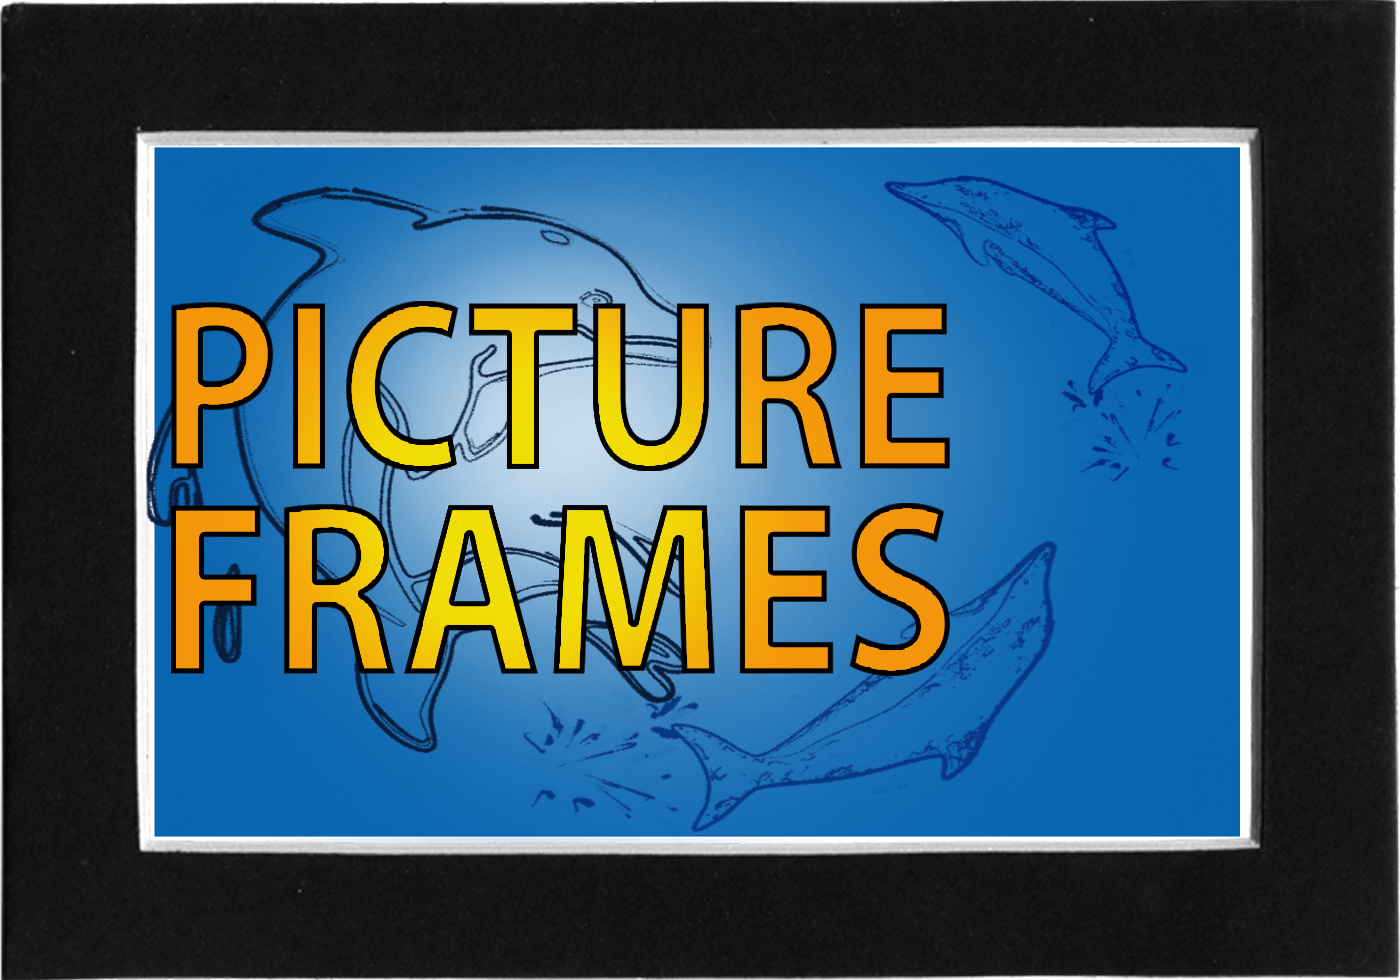 12 Picture Frames - Free Photoshop Brushes at Brusheezy!